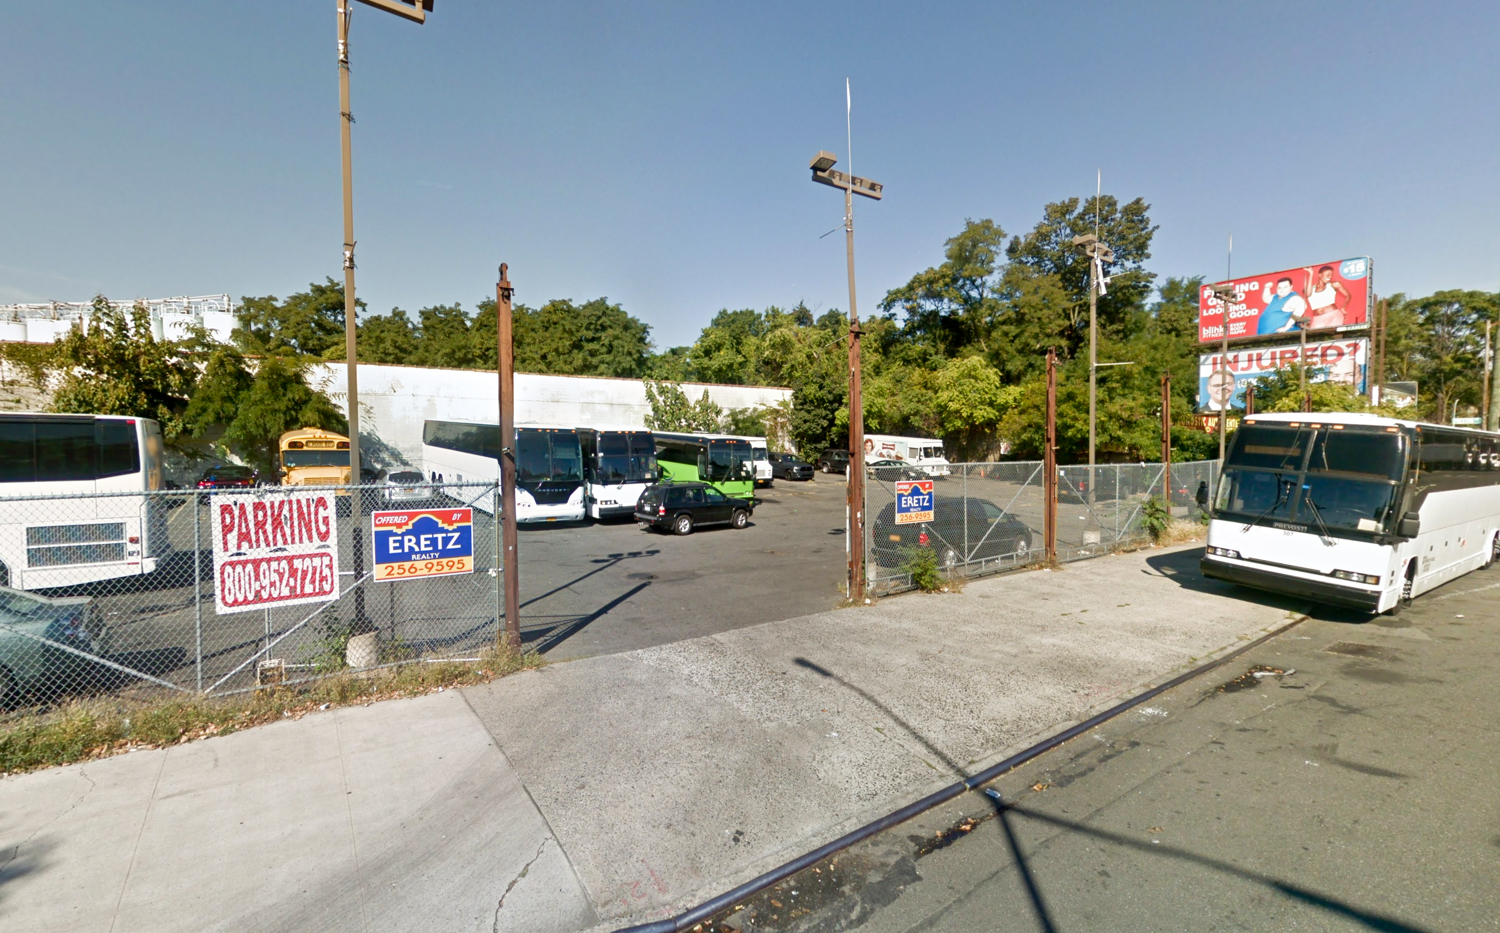 5244 Kings Highway, via Google Maps